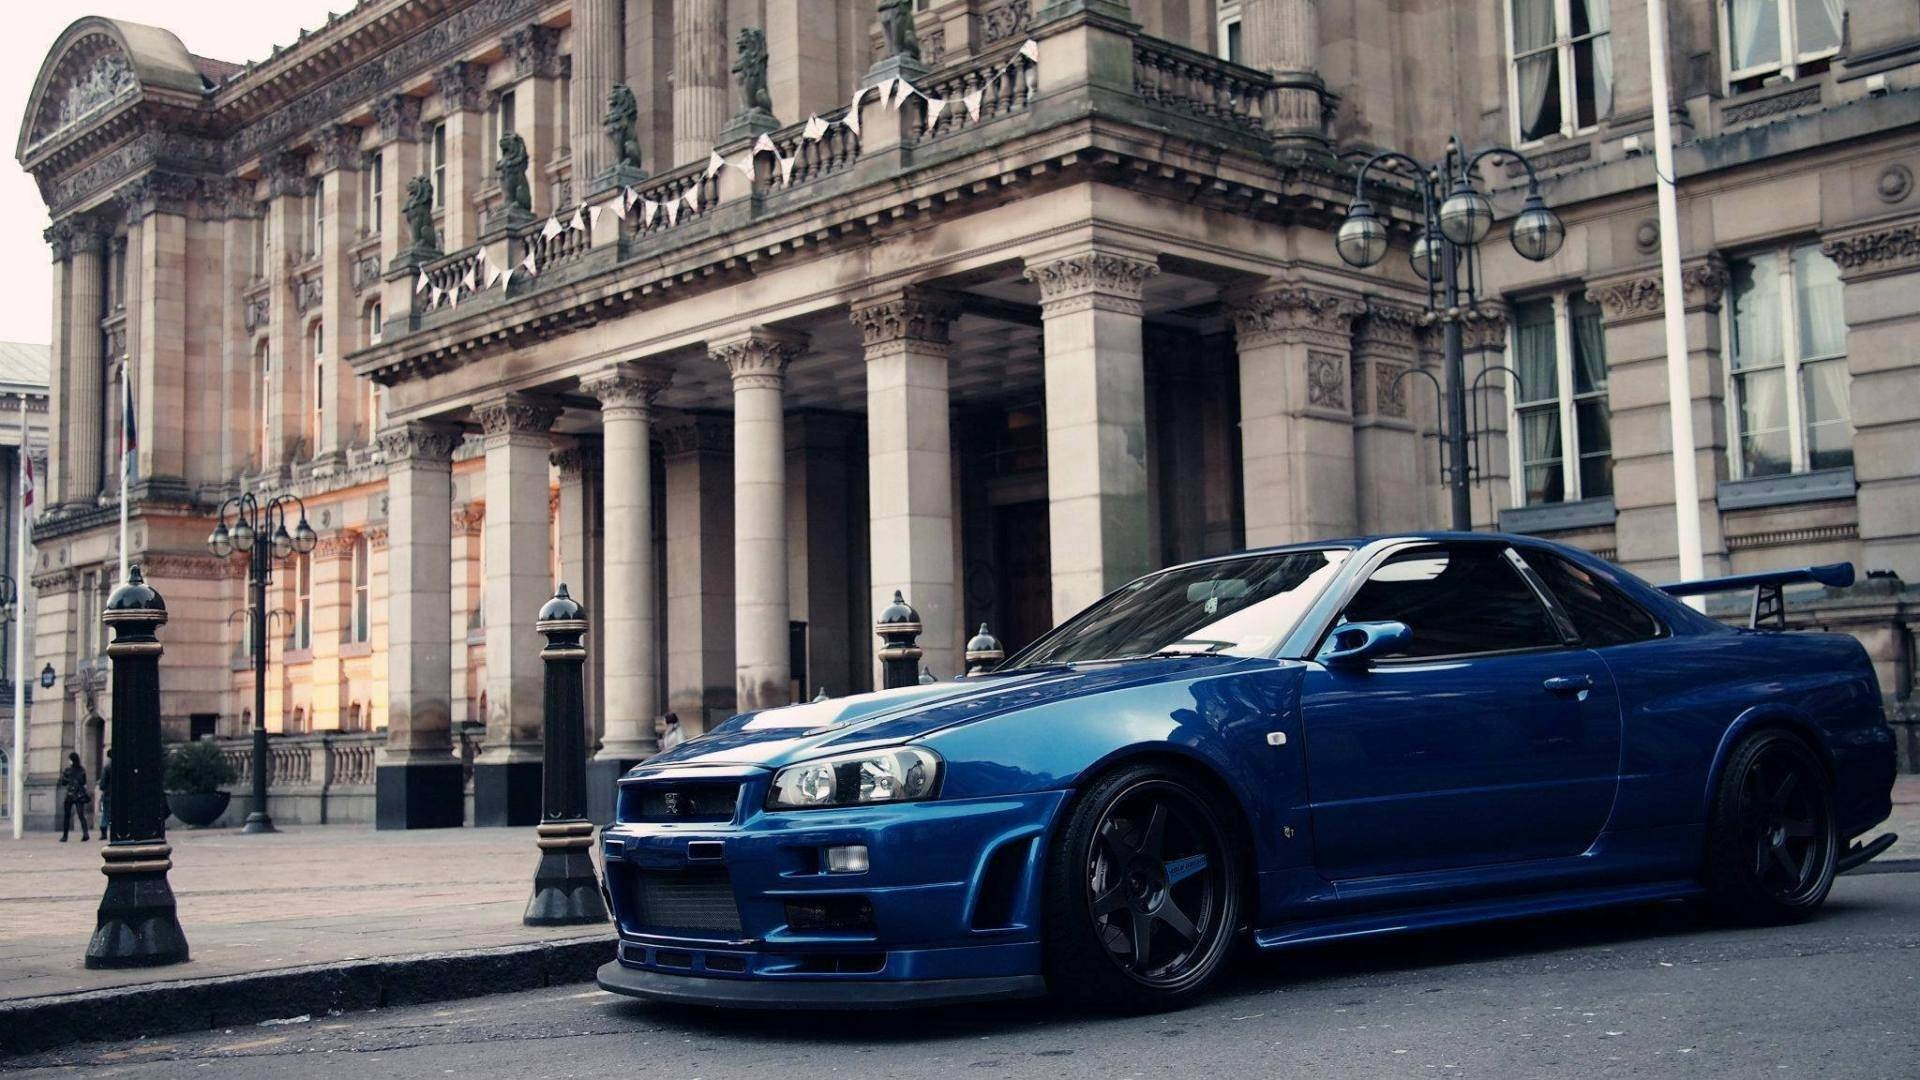 Skyline Gtr Wallpaper 79 Images